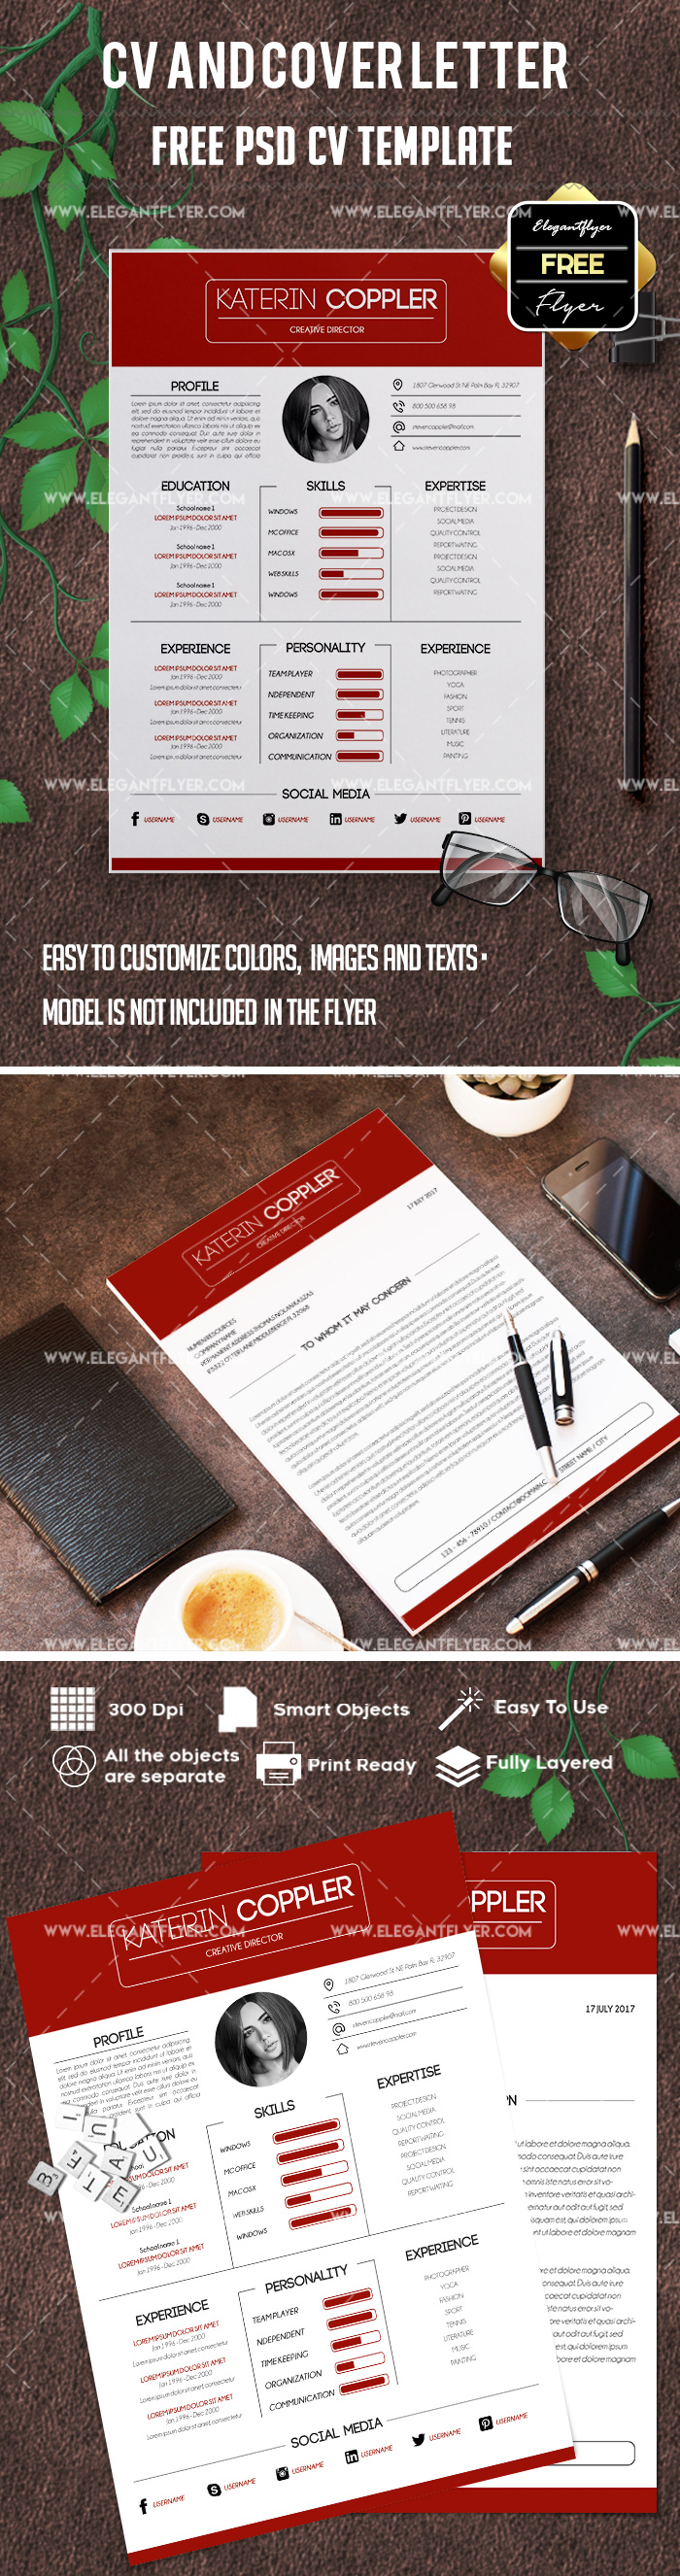 Free Great CV Cover Letters PSD Template